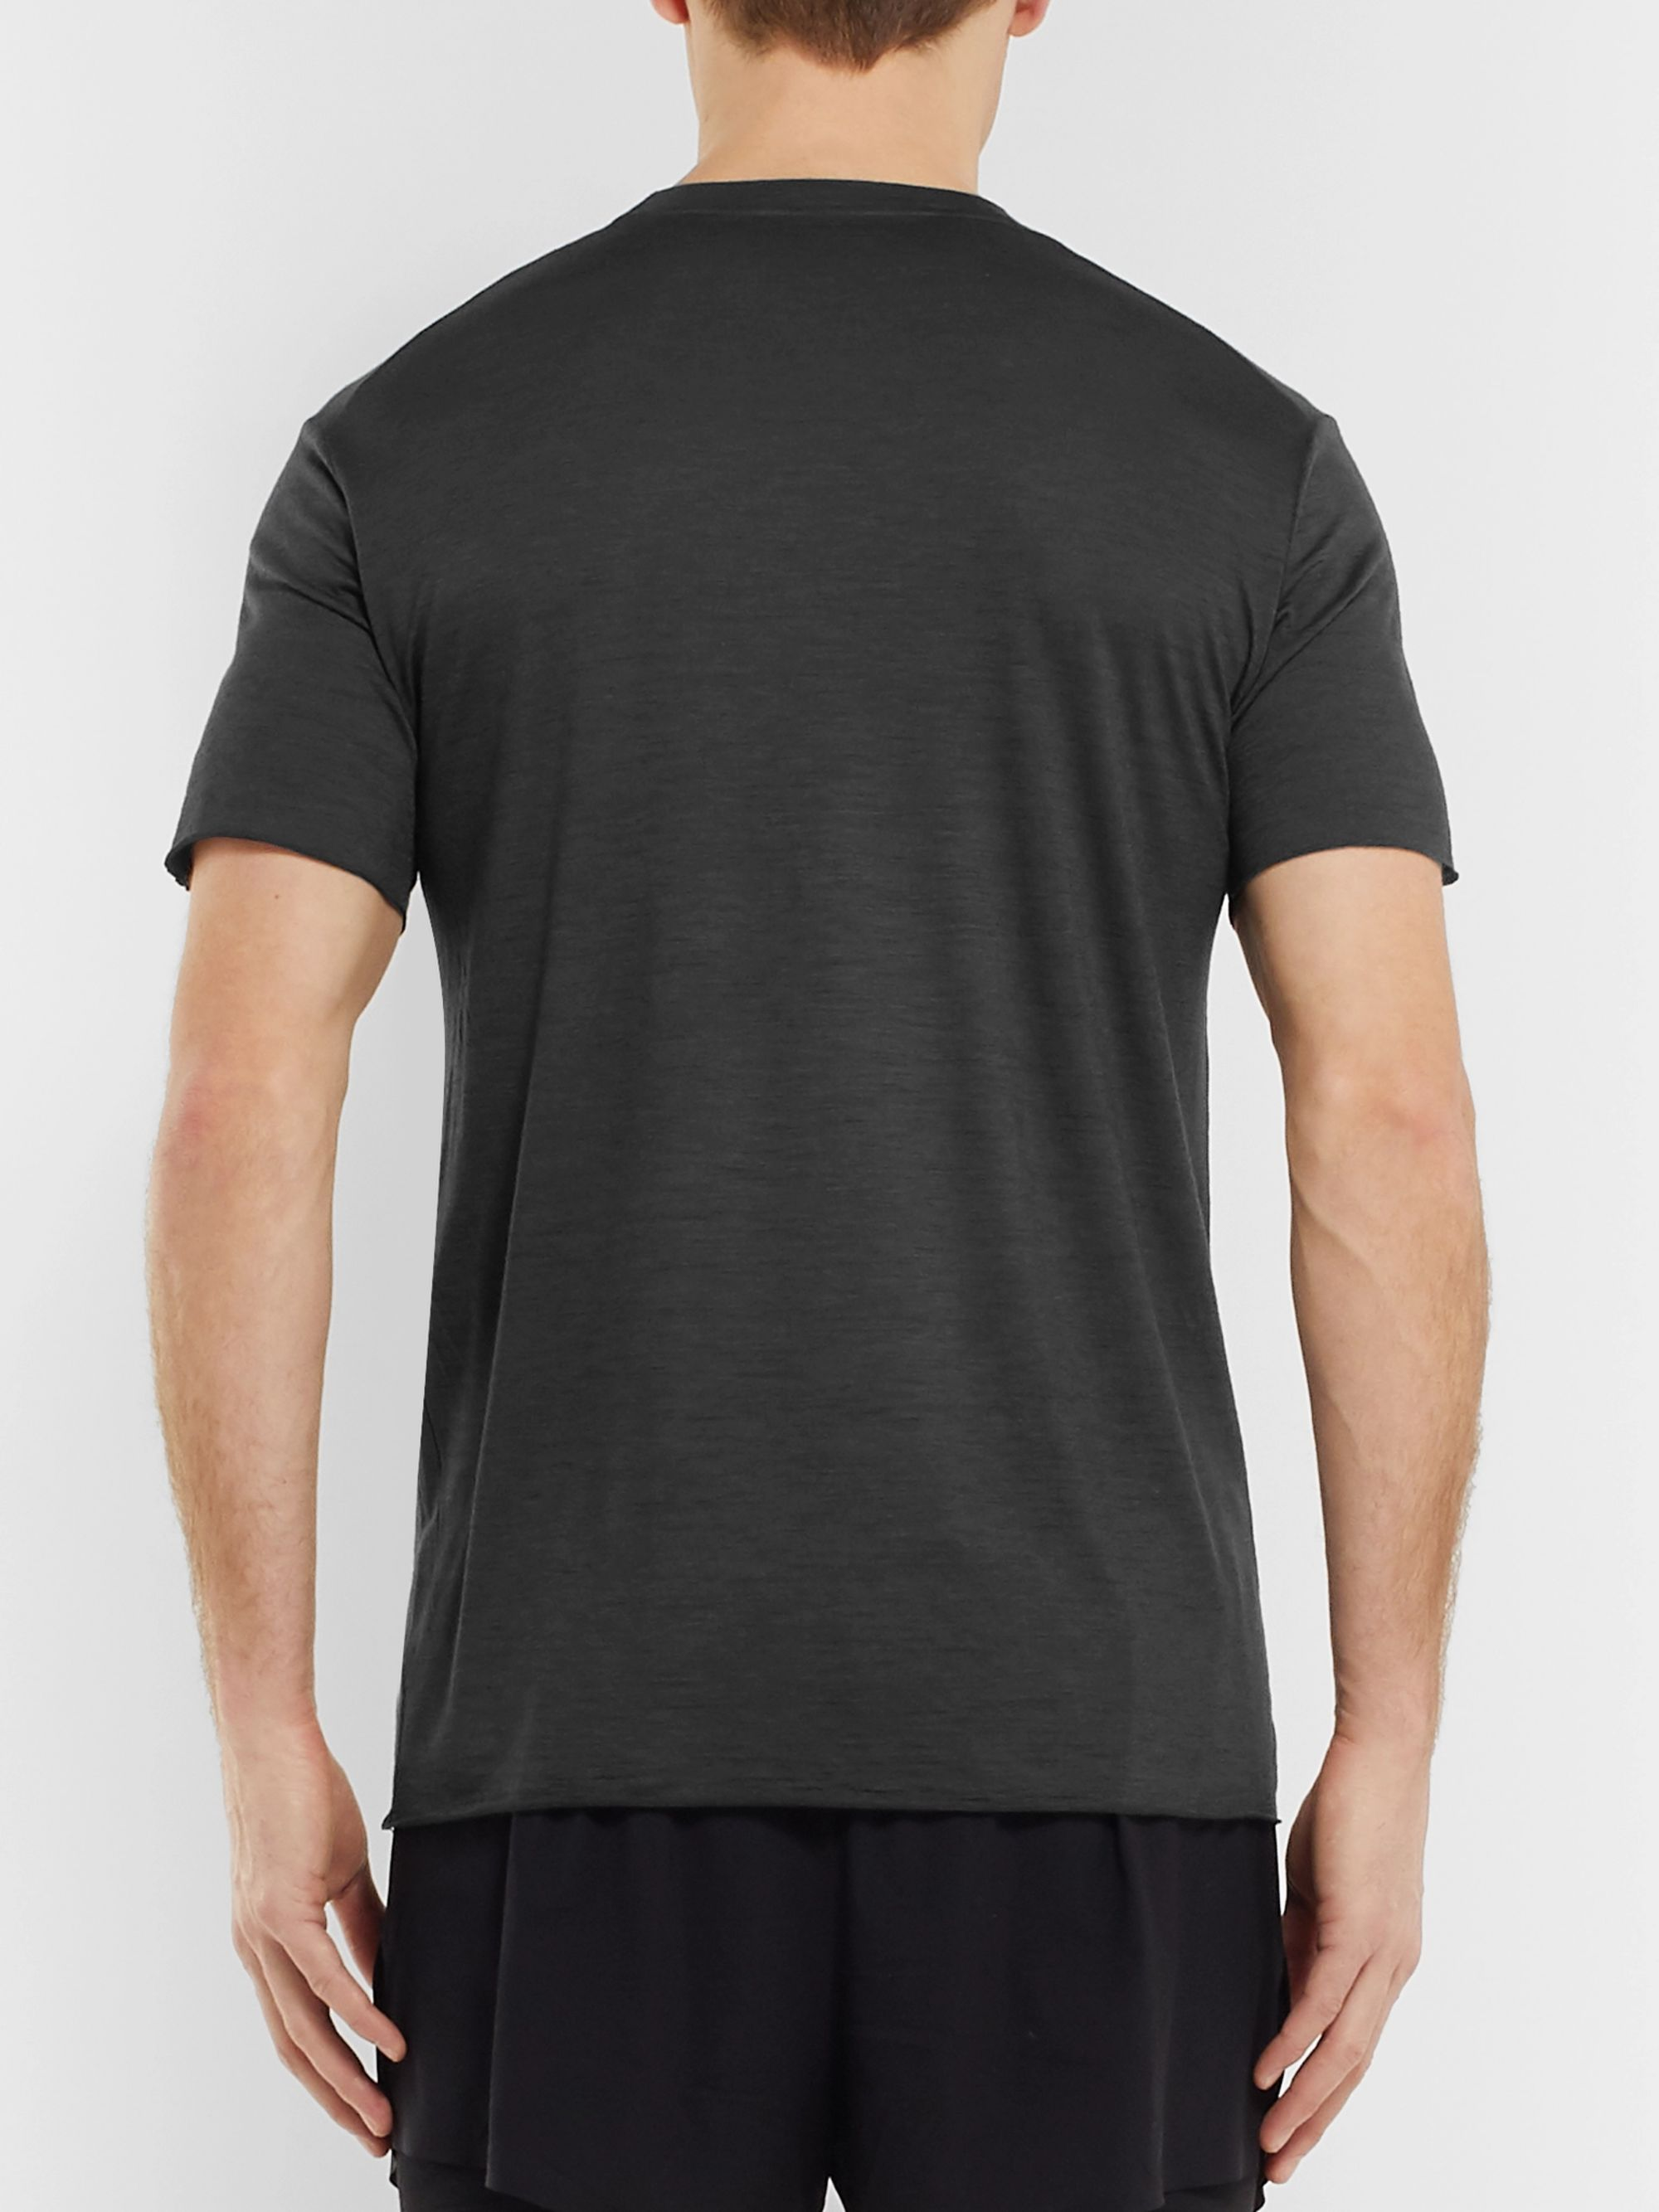 Satisfy Cloud Mélange Merino Wool Running T-Shirt